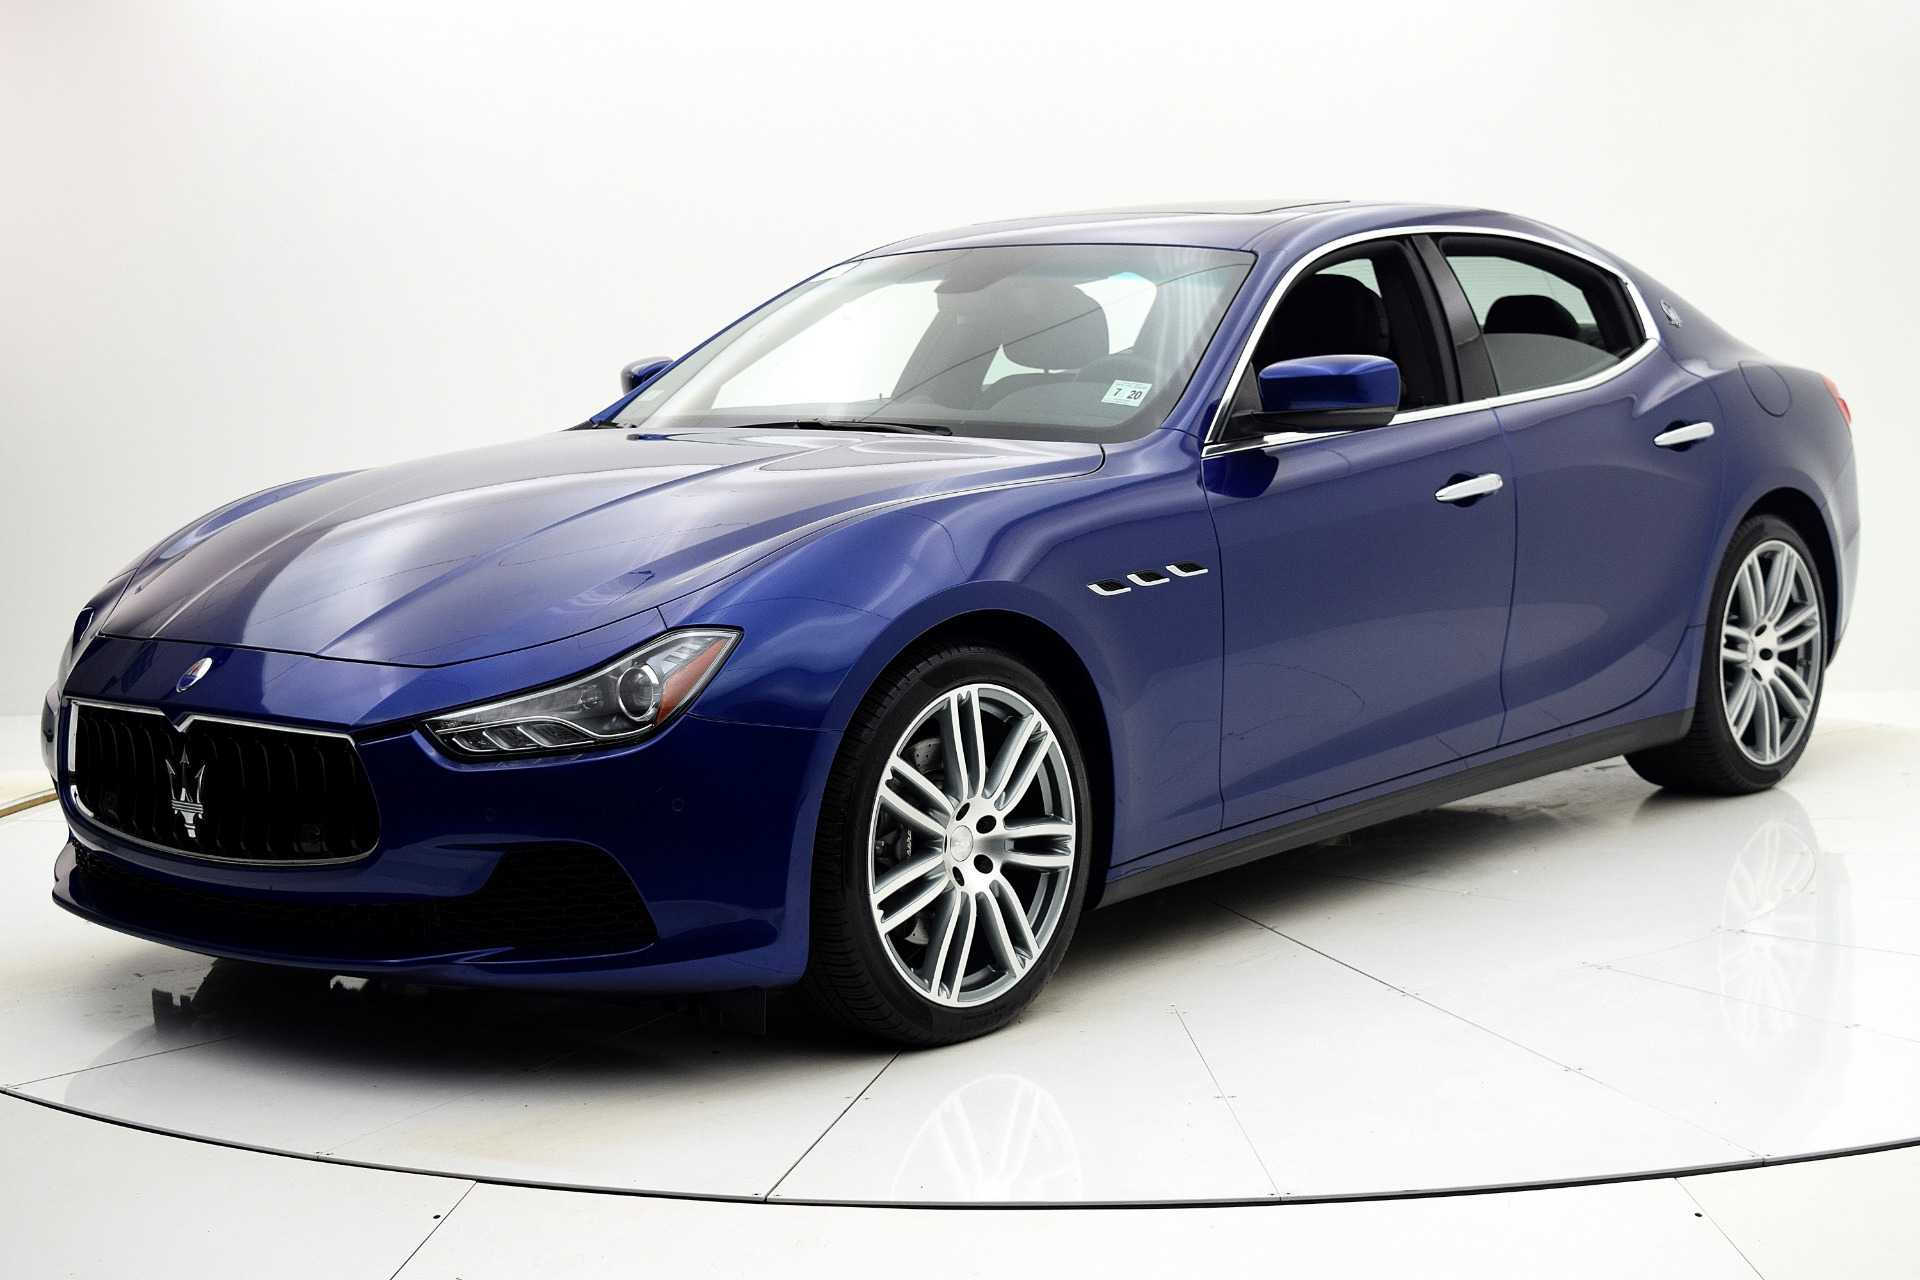 Maserati Ghibli 2015 Blue Emozione Mica For Sale $39880 Stock Number 2026JI